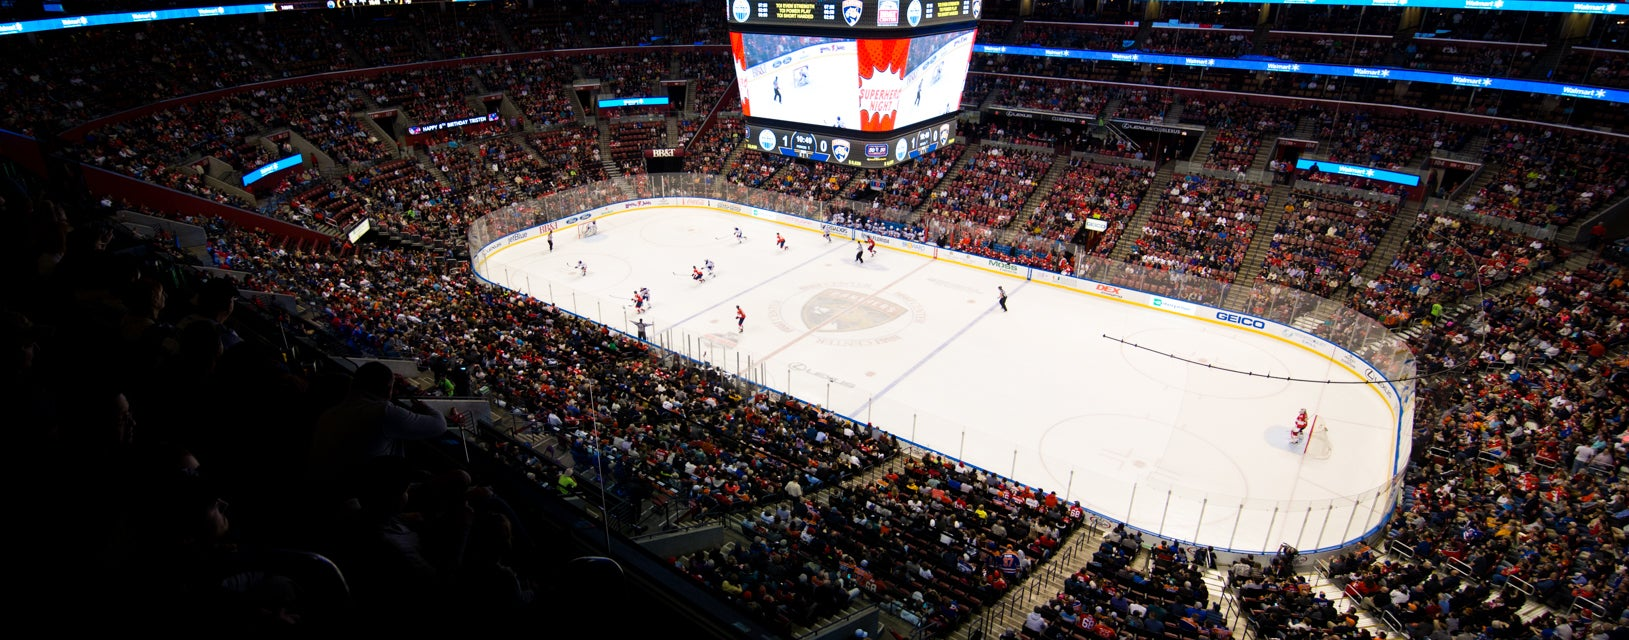 Seat view from Goal Zone